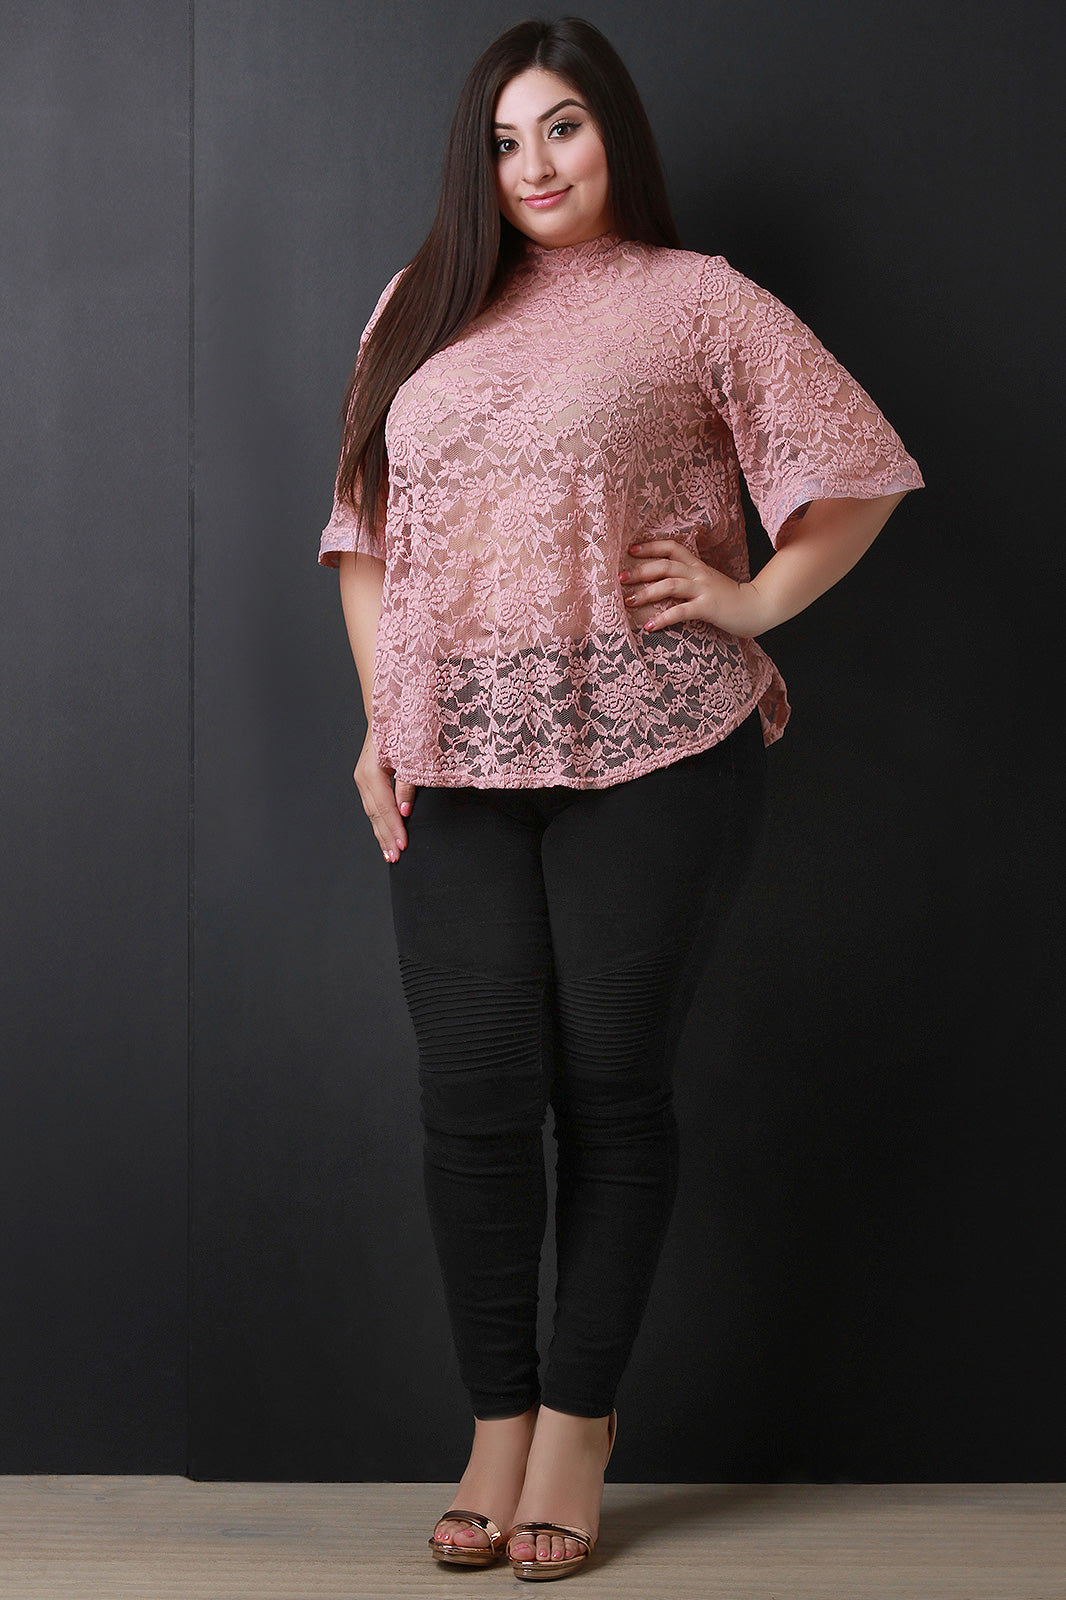 Semi-Sheer Lace Flared Bell Sleeves Top